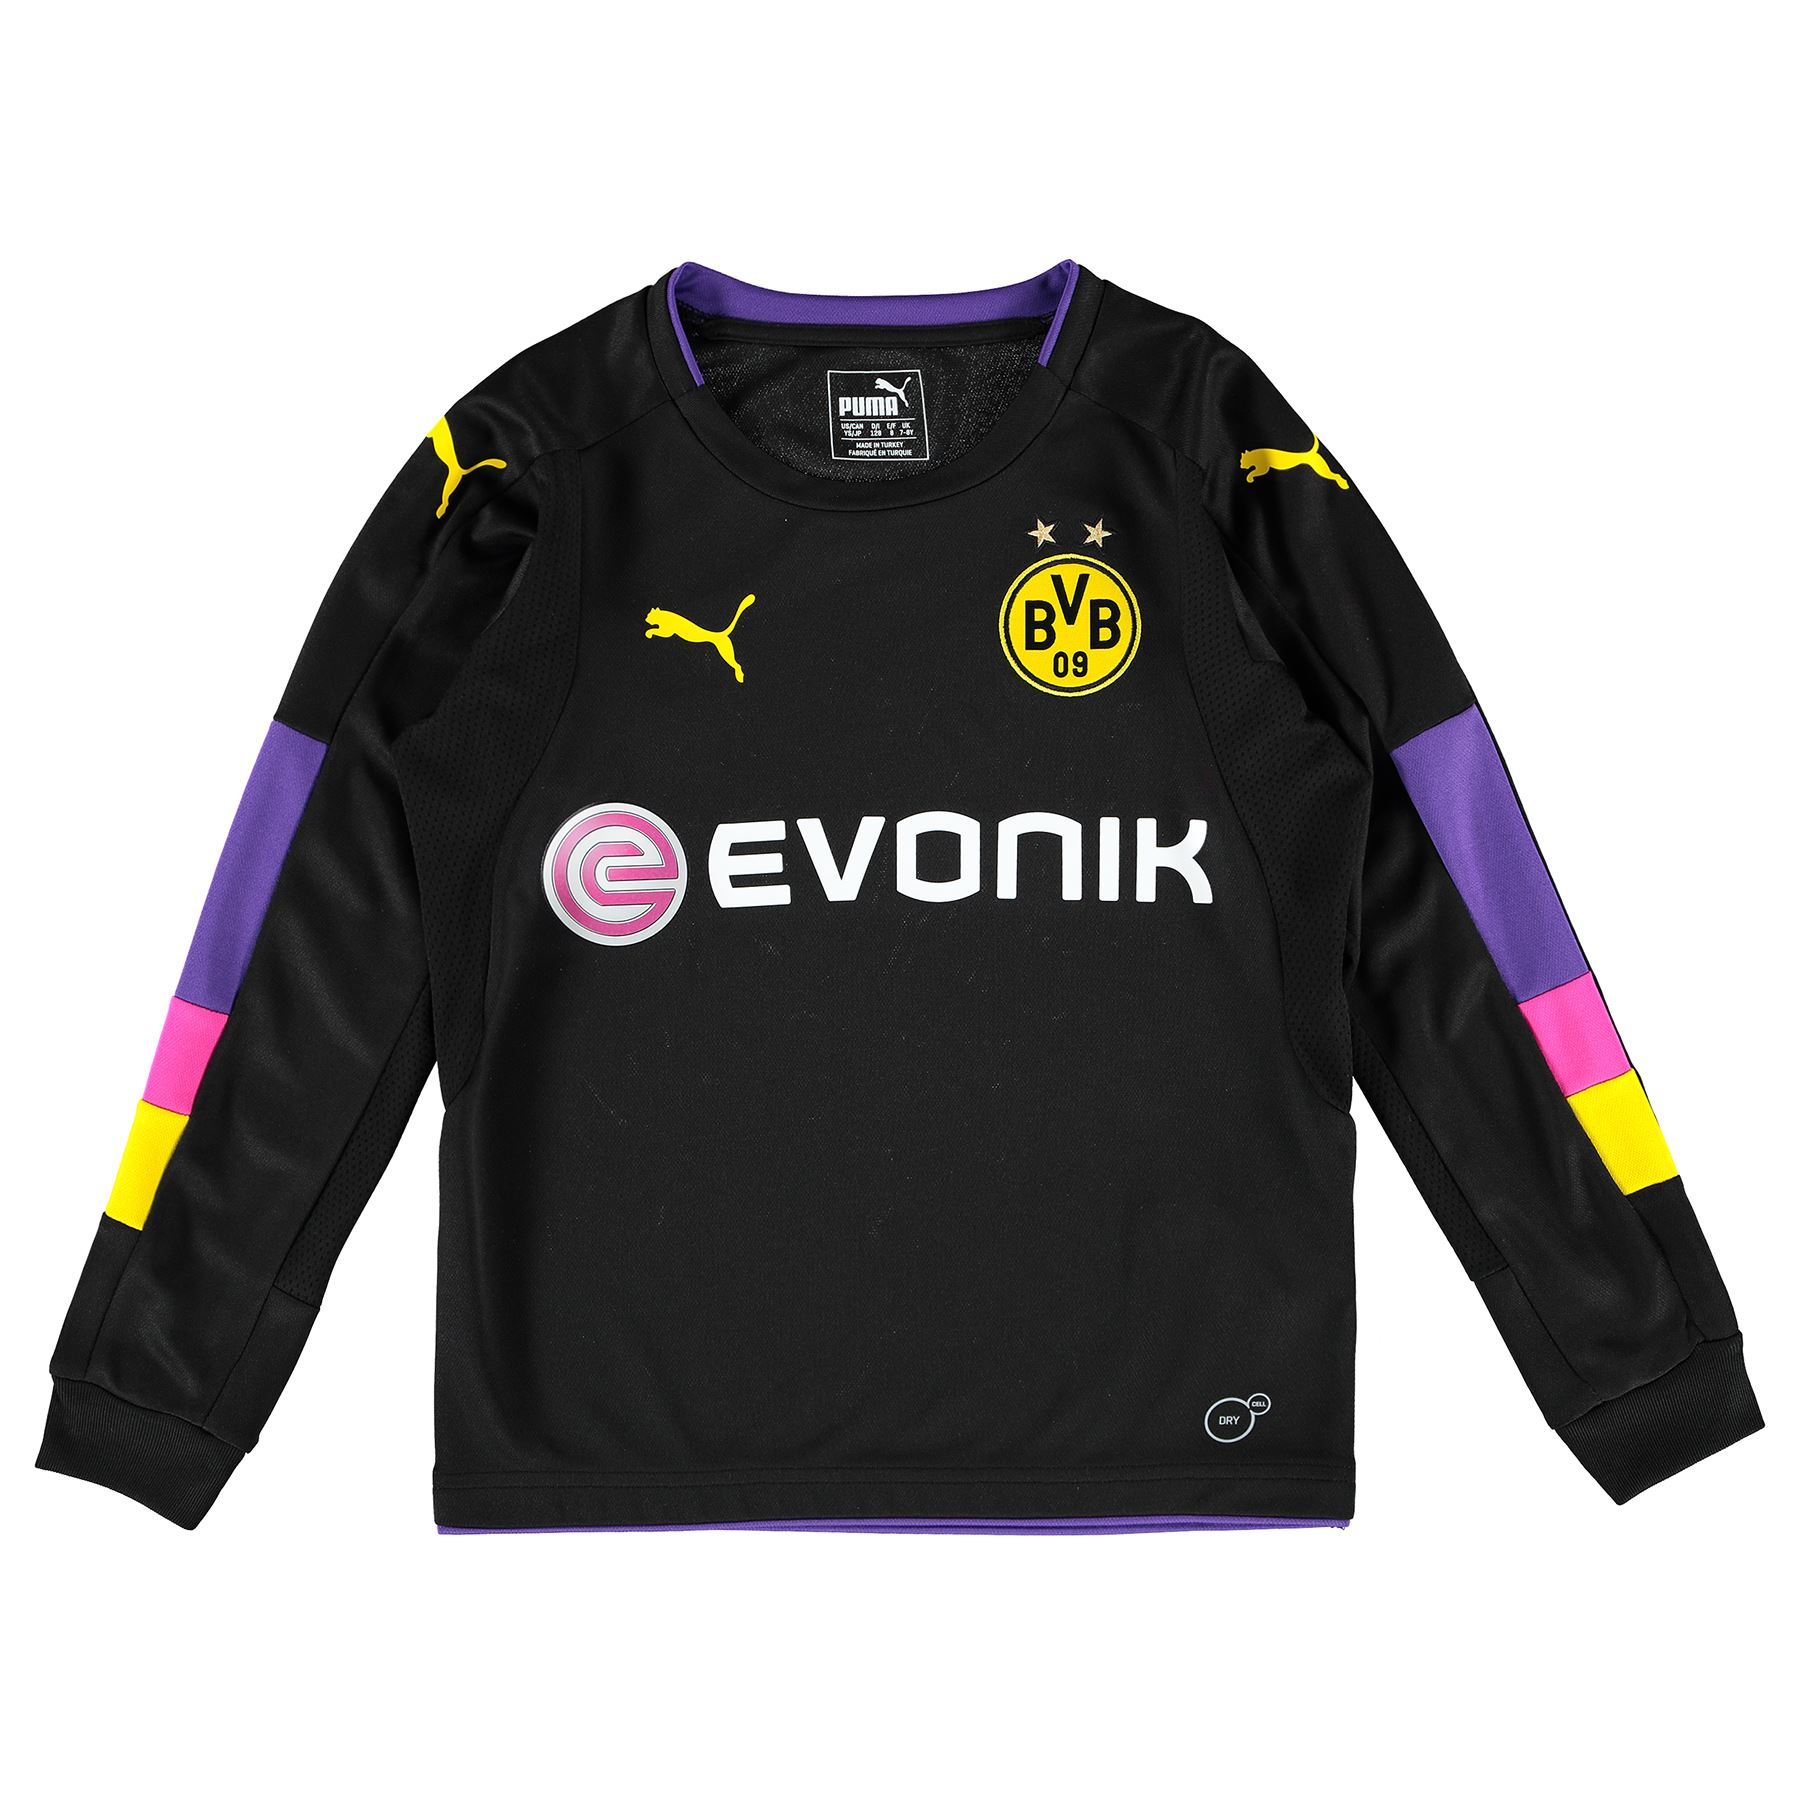 puma kinder fussball bvb dortmund torwart shirt trikot. Black Bedroom Furniture Sets. Home Design Ideas